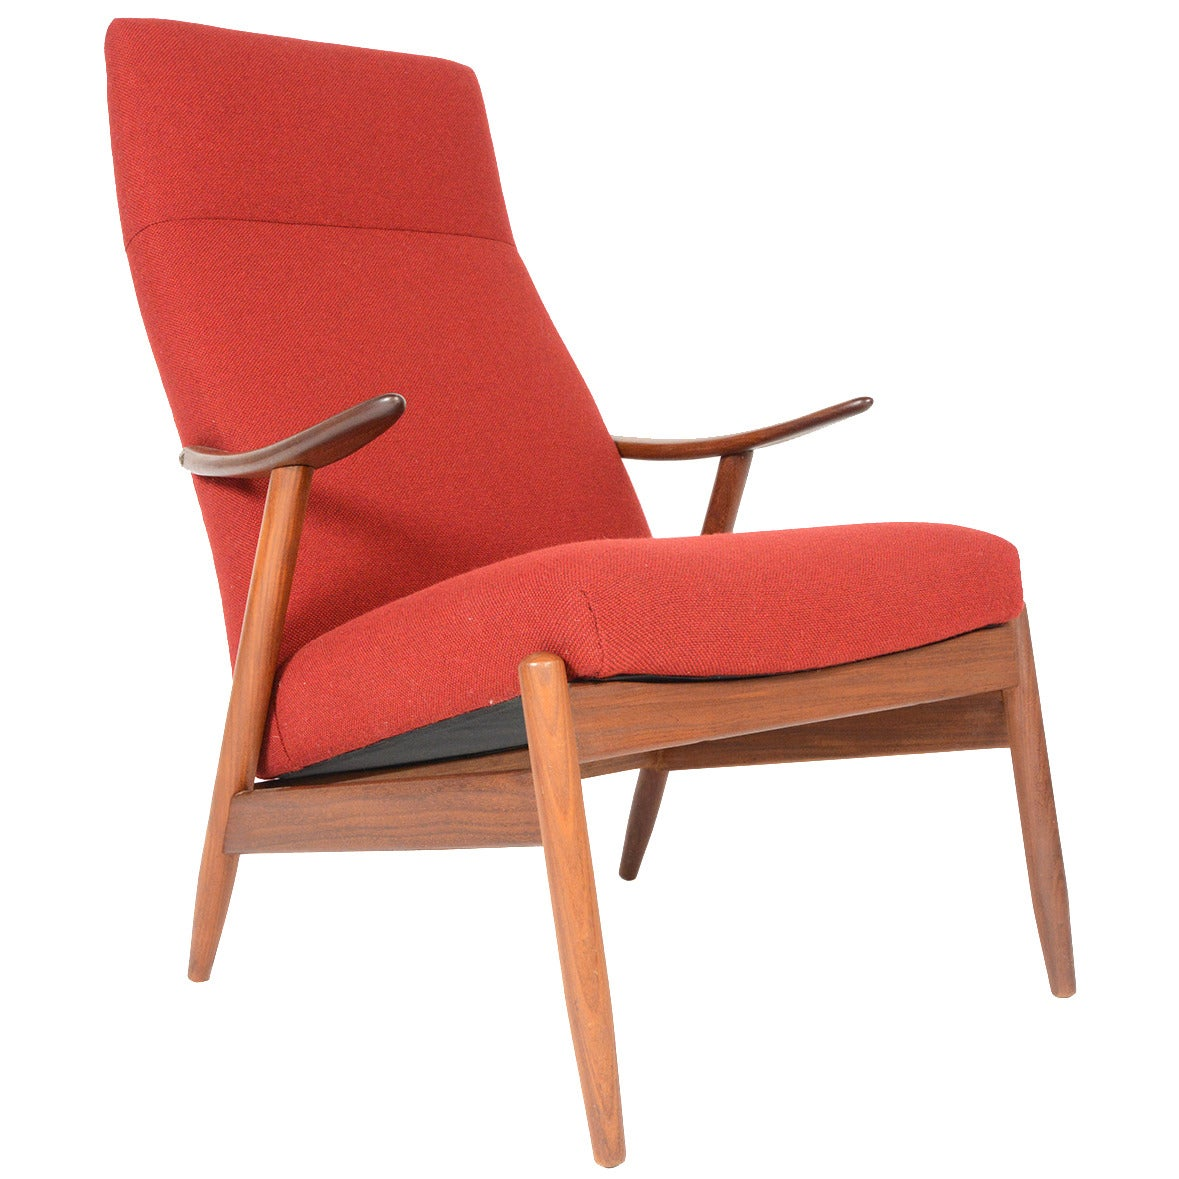 Modern Lounge Chairs Danish Modern Highback Teak Lounge Chair In Crimson At 1stdibs